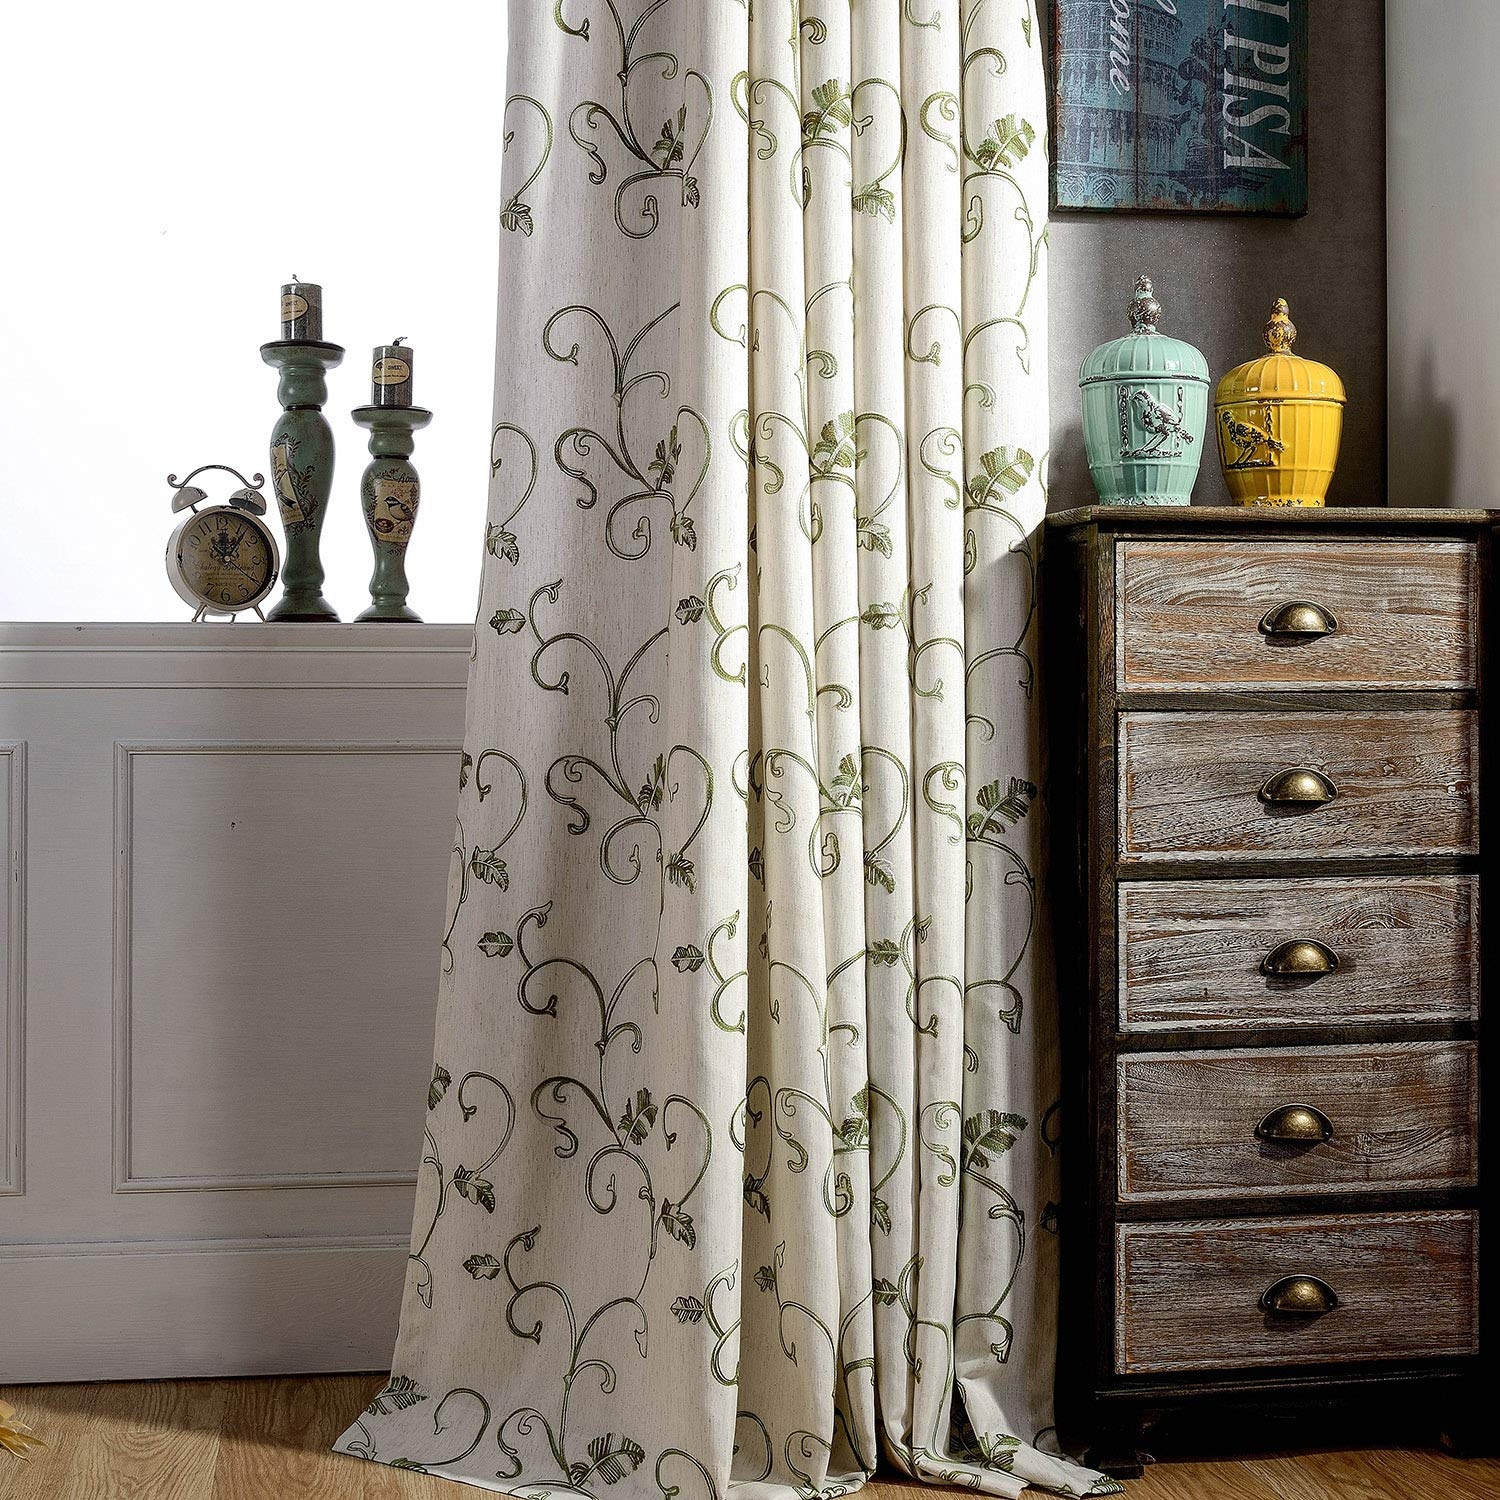 Leeva (Set of 2 Plant Embroidery Outdoor Curtains 84 Inches Length, Top Grommet Vintage Style Curtain Drapes for Living Room Patio and Kids Room, Green, 52 x 84 Inch by Leeva